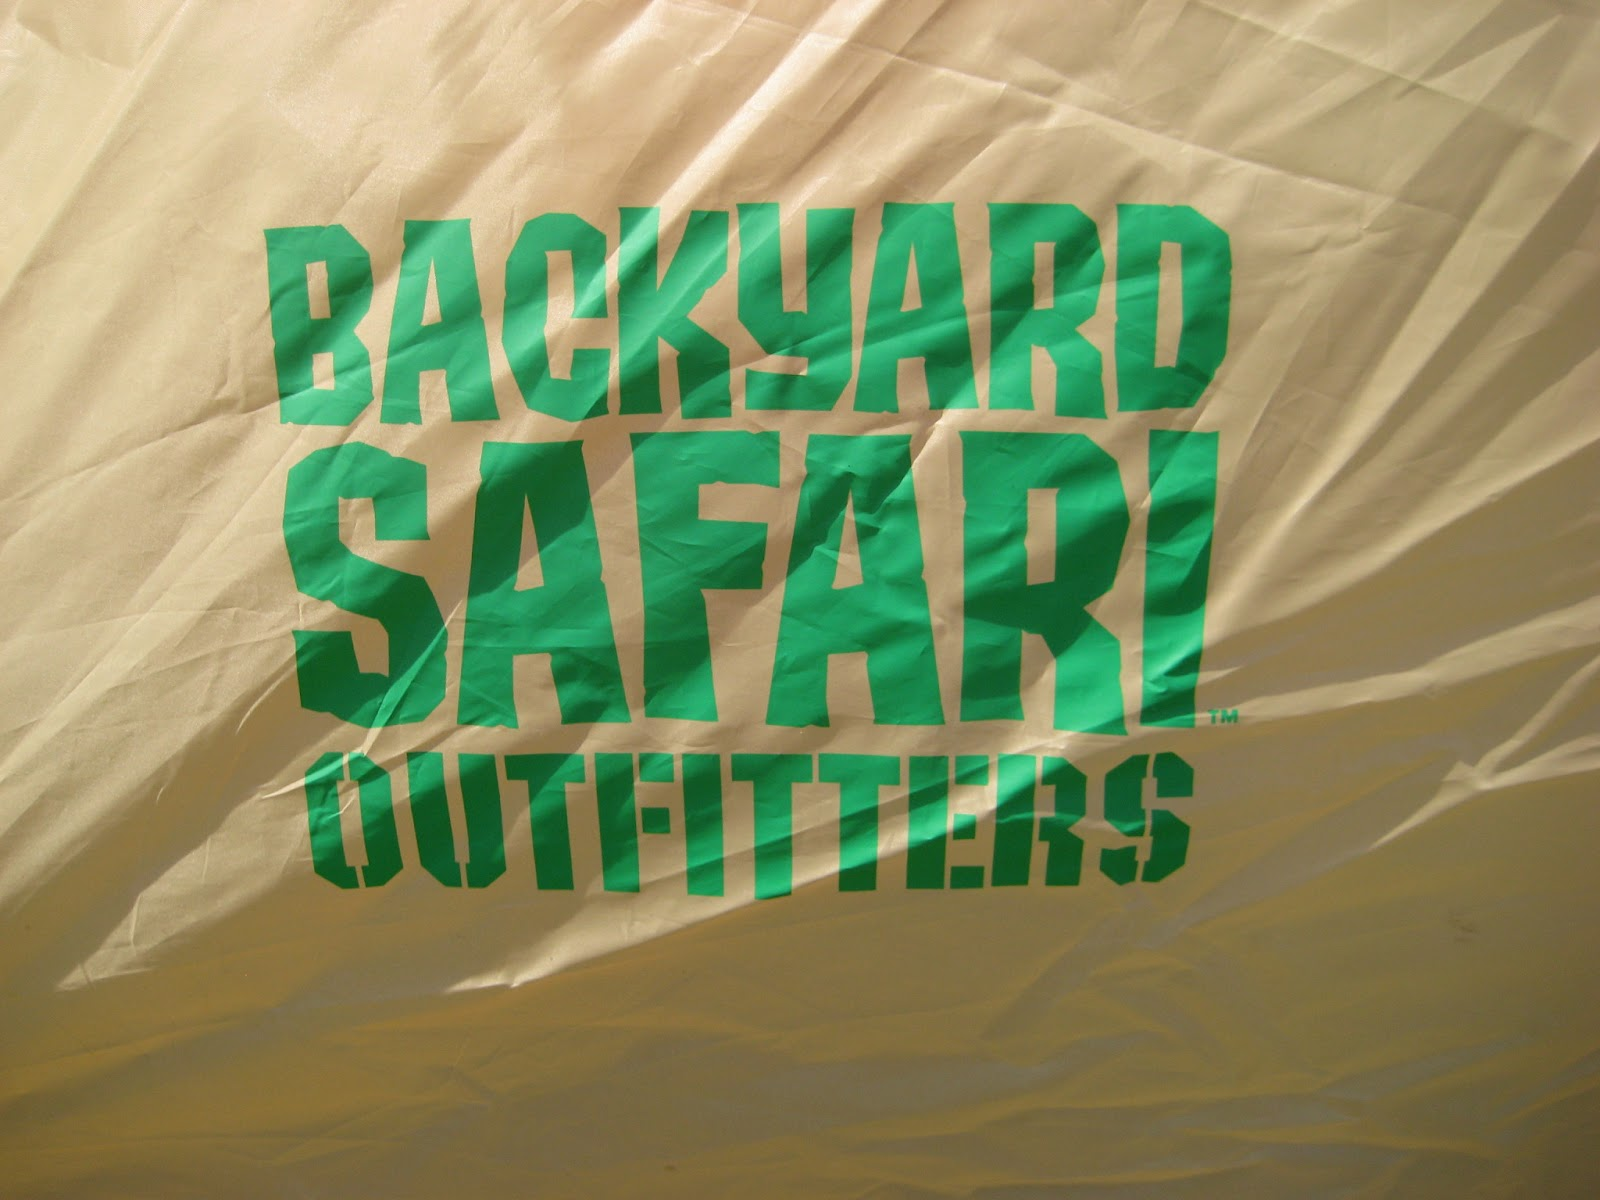 adventures with backyard safari outfitters giveaway ends 5 20